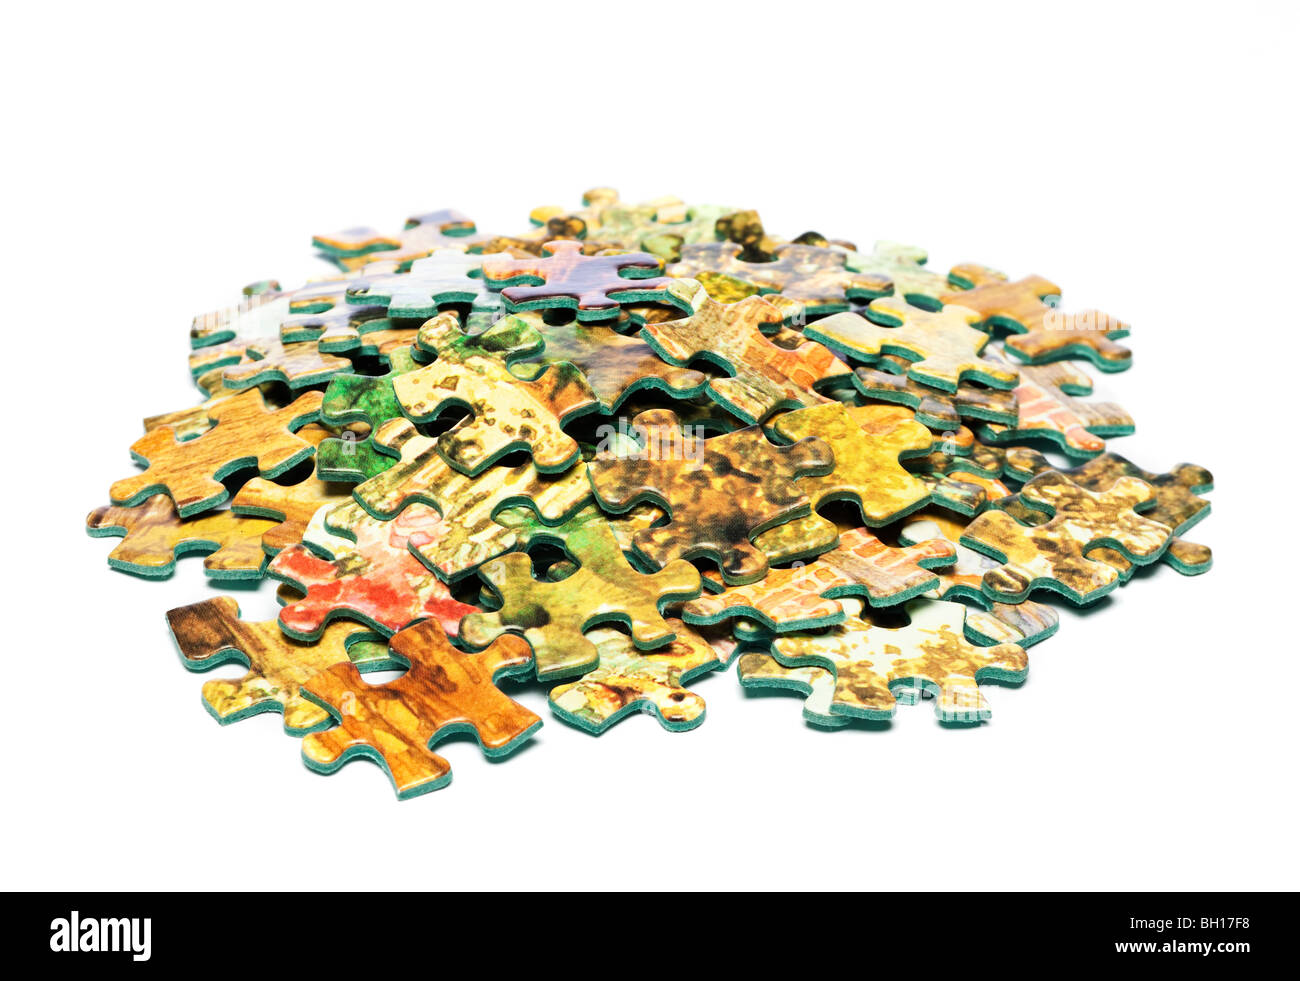 Pile of jigsaw pieces, cut out on white background - Stock Image